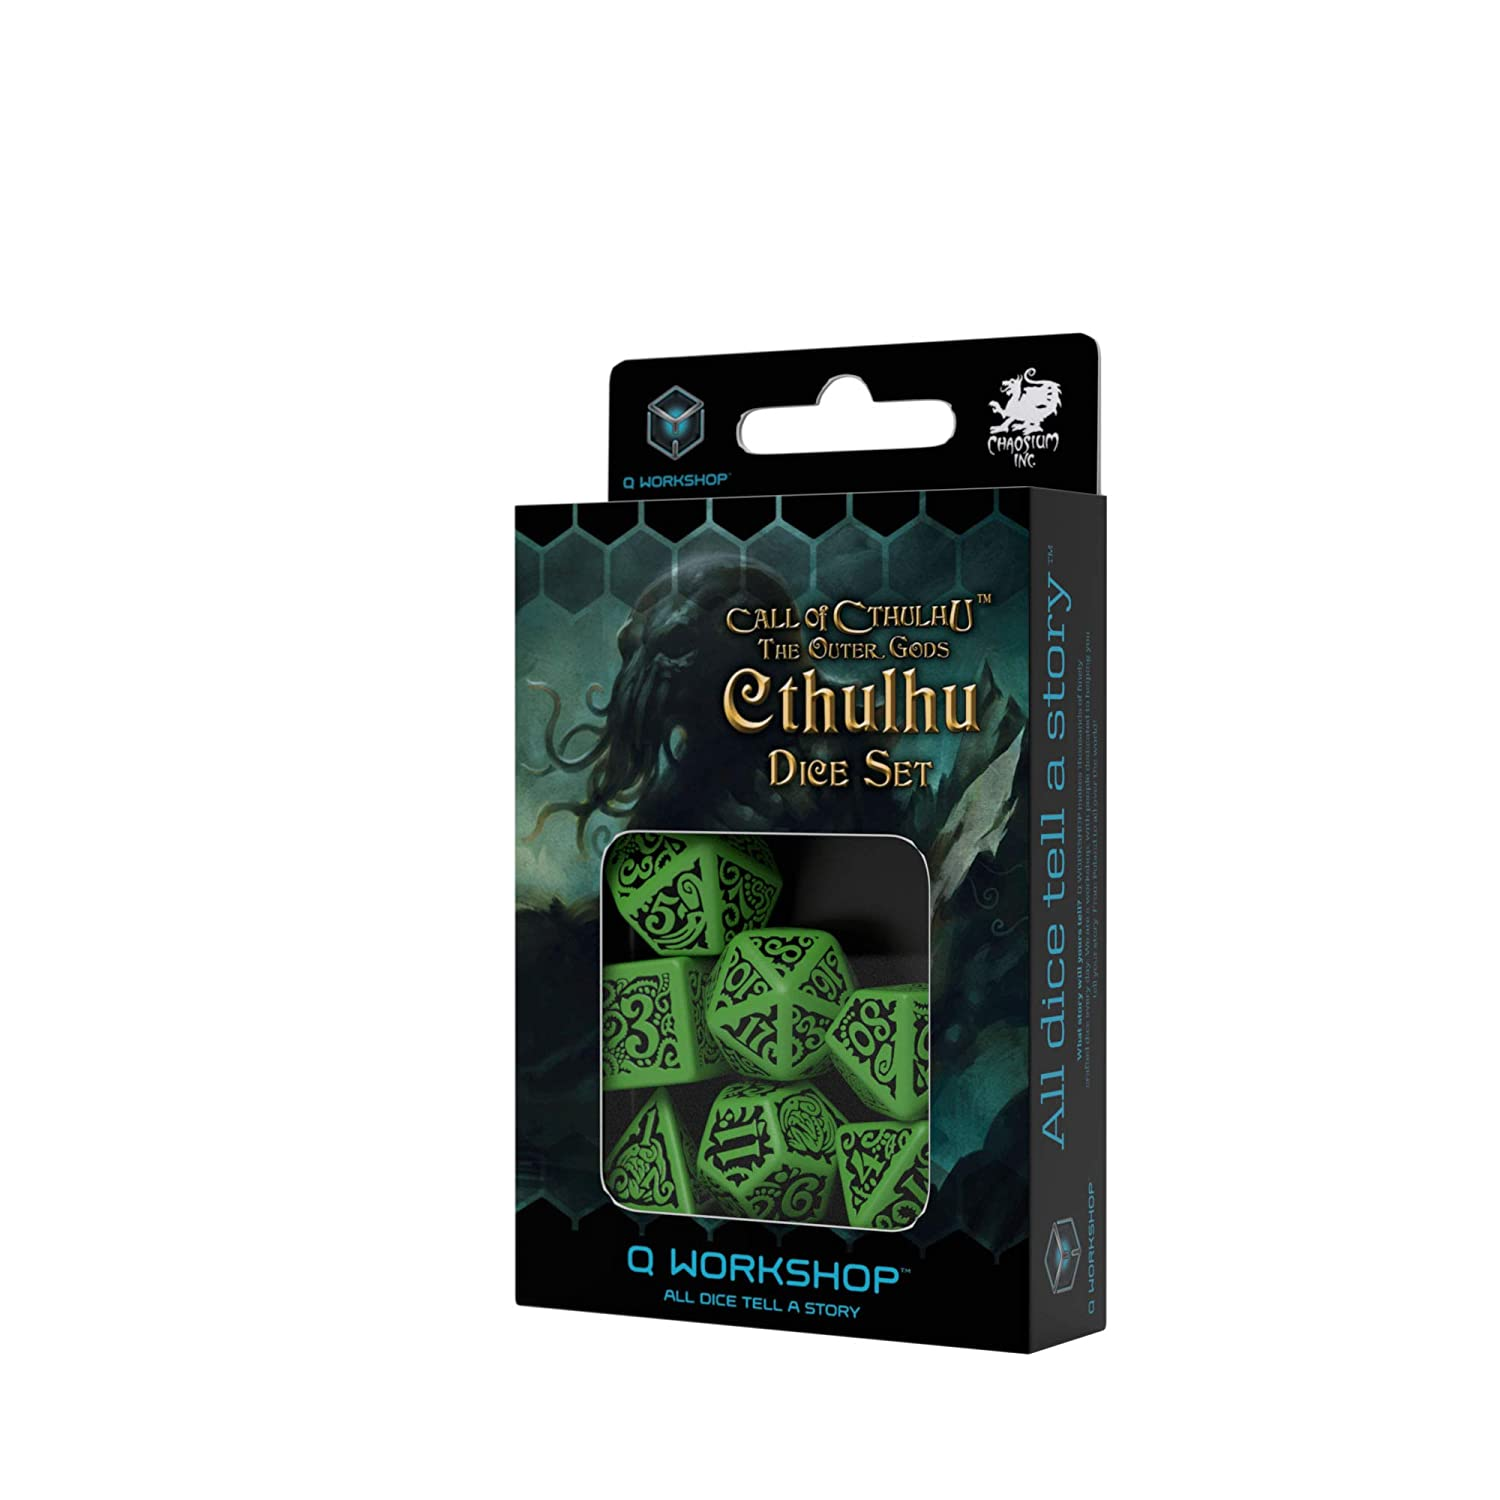 Q WORKSHOP Call of Cthulhu The Outer Gods Cthulhu RPG Ornamented Dice Set 7 Polyhedral Pieces